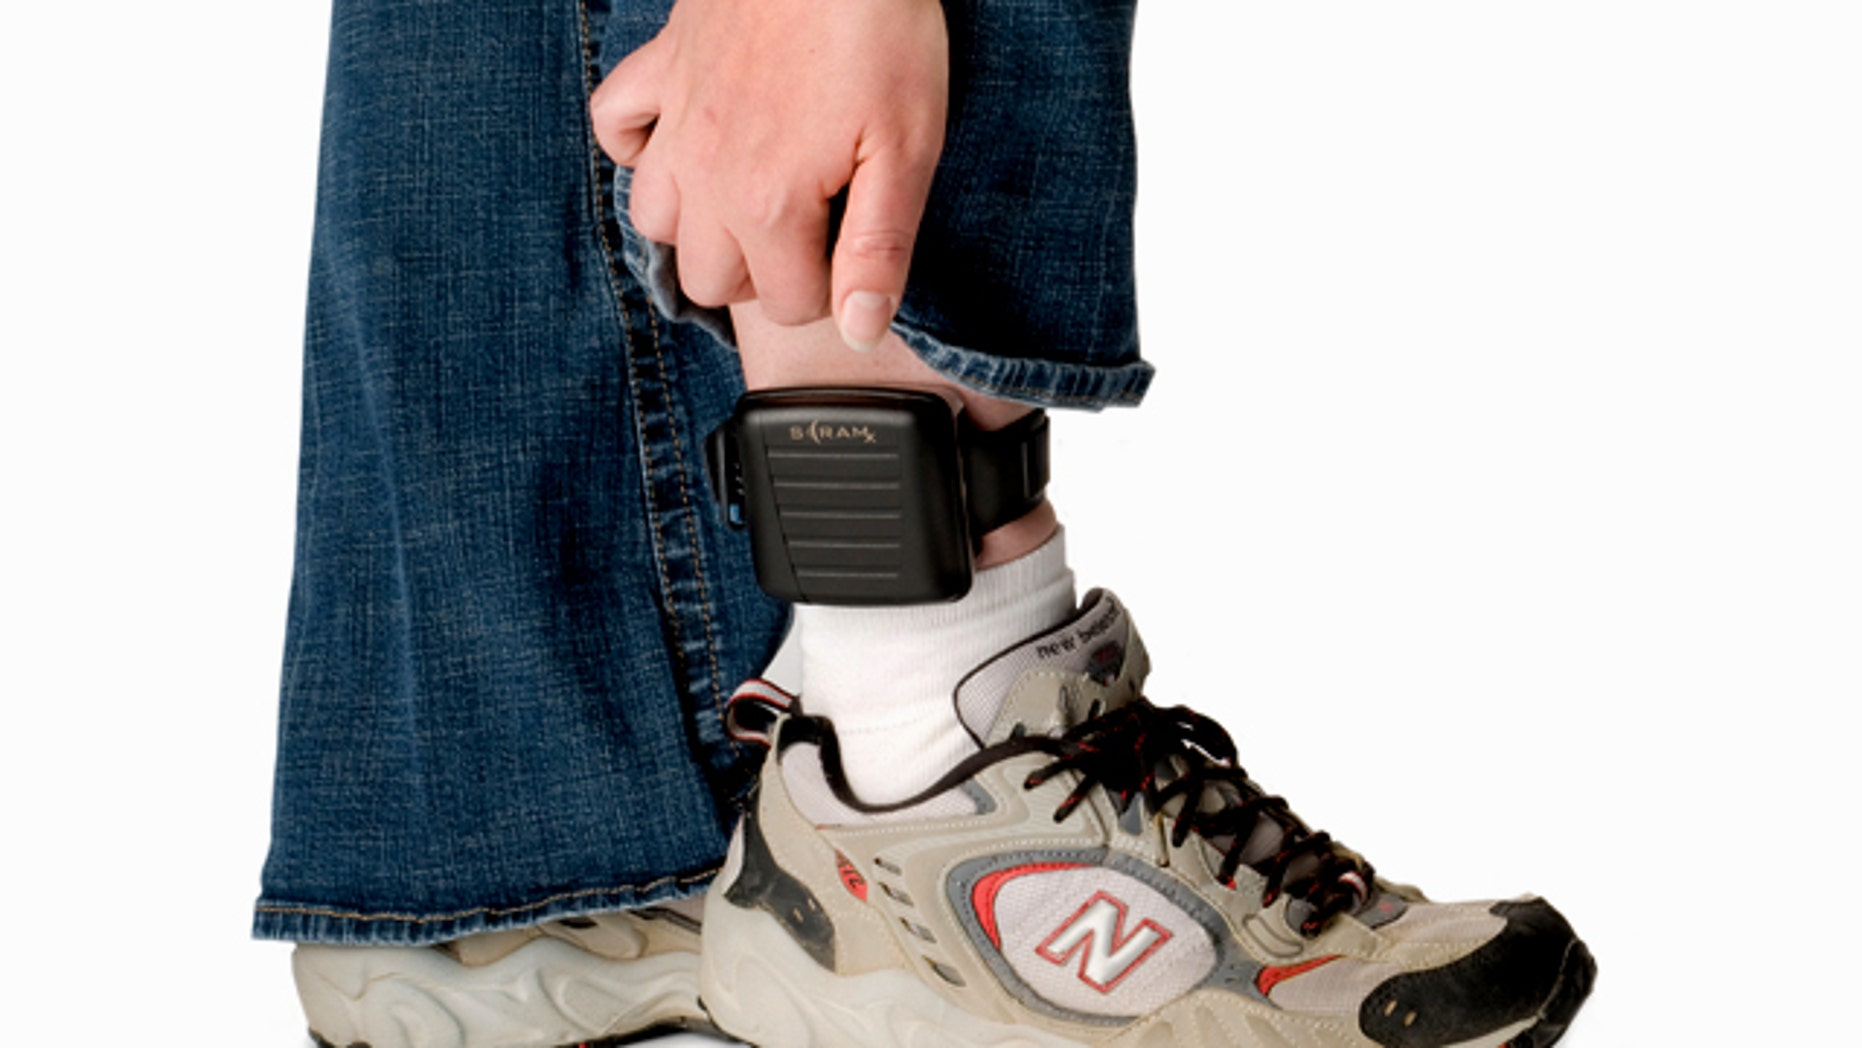 This product image provided by AMS, shows the SCRAMx alcohol-monitoring ankle bracelet.